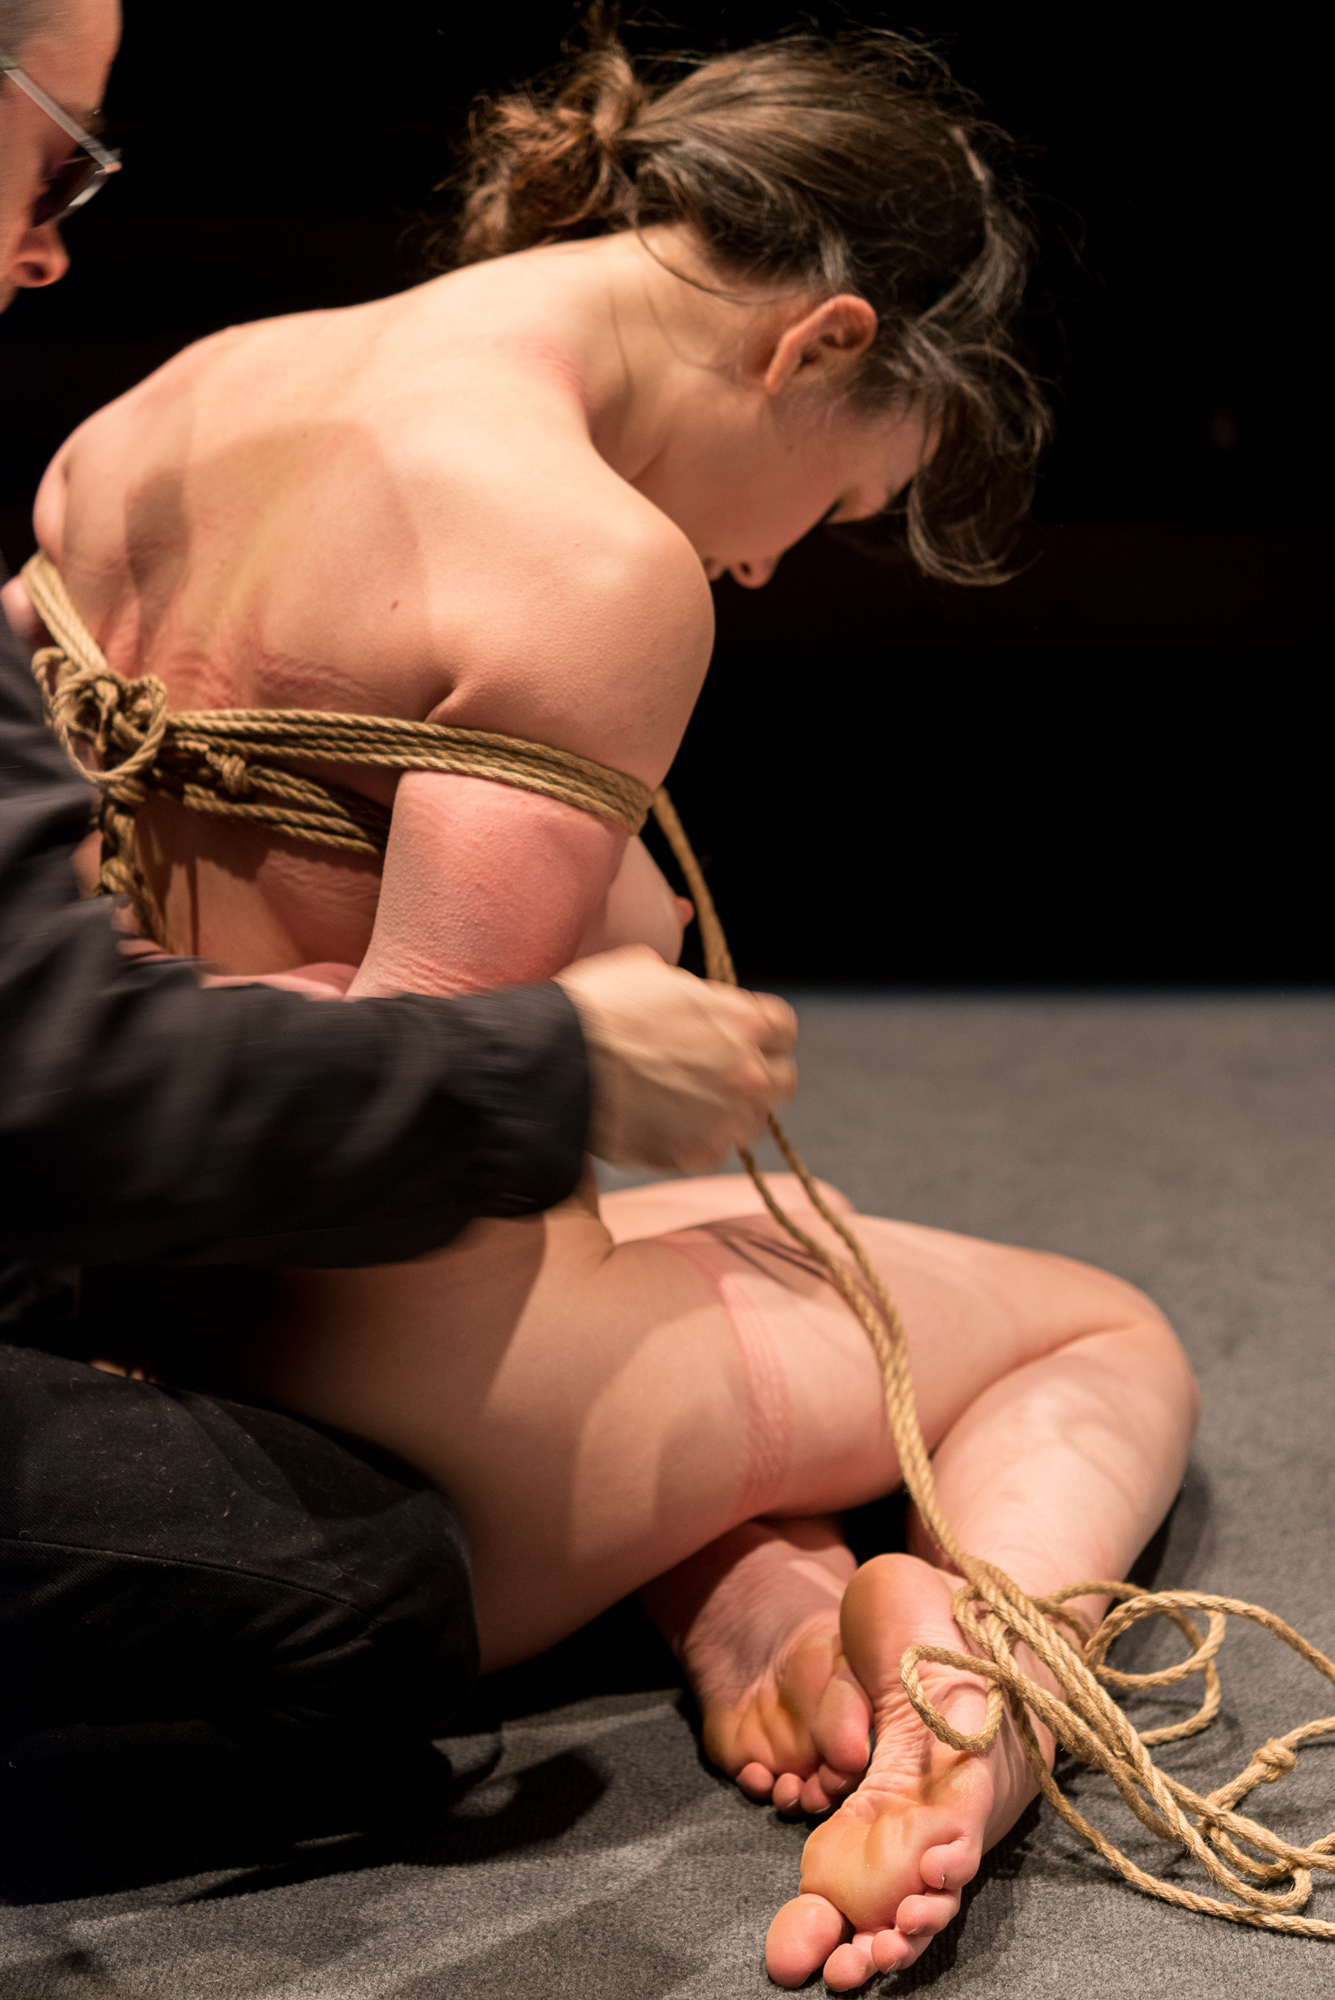 Pedro untying Gestalta at the end of a shibari performance